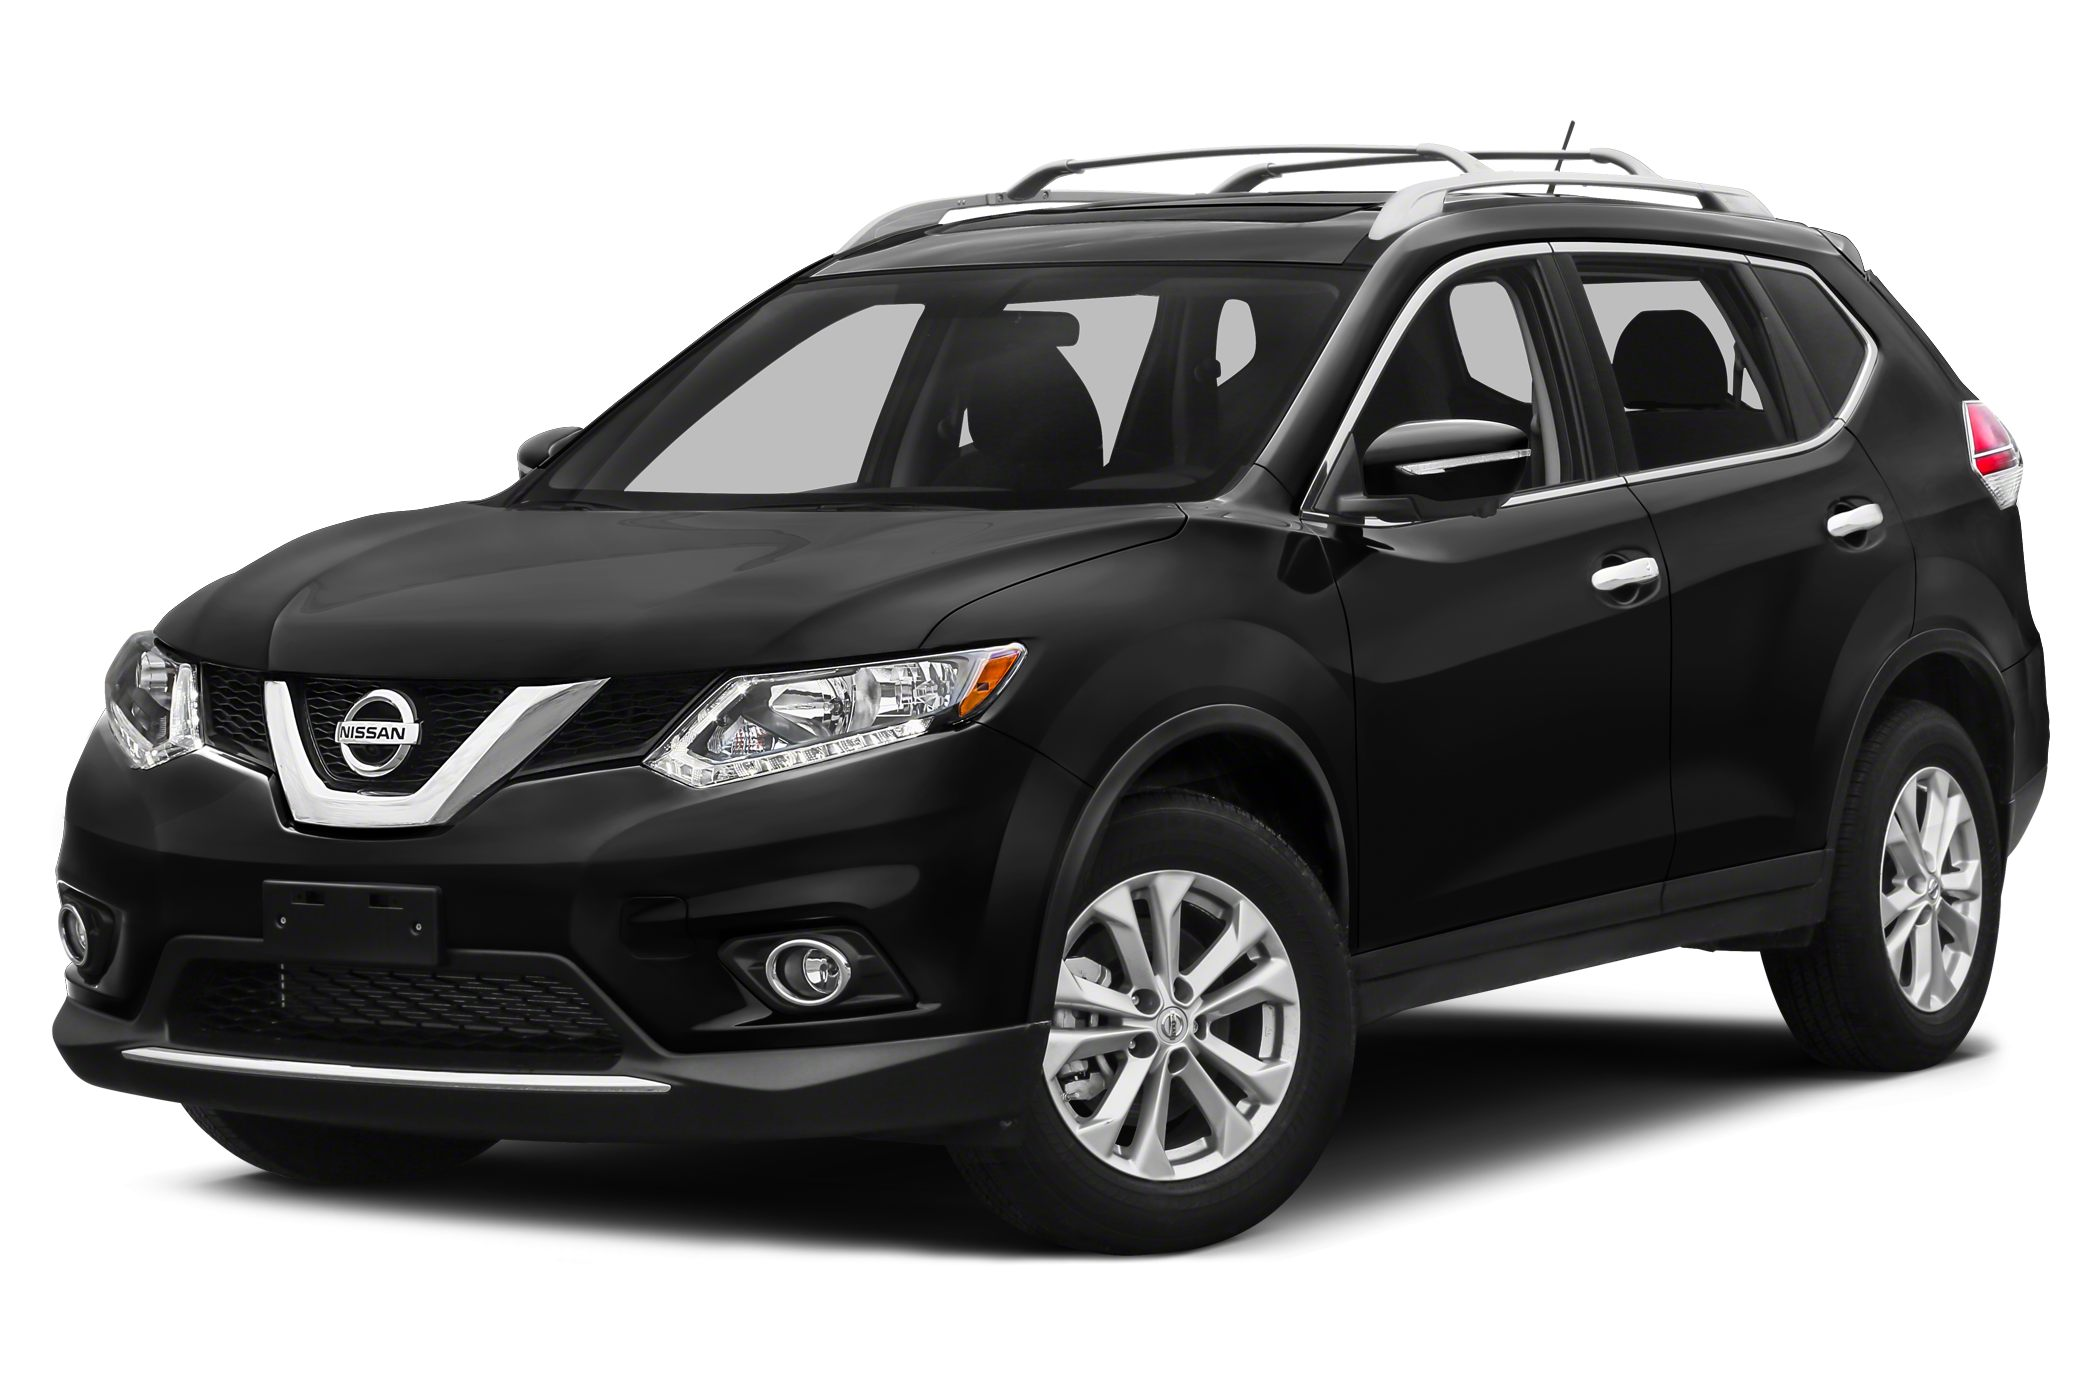 nissan recalls 2014 rogue again for fuel pump failure. Black Bedroom Furniture Sets. Home Design Ideas